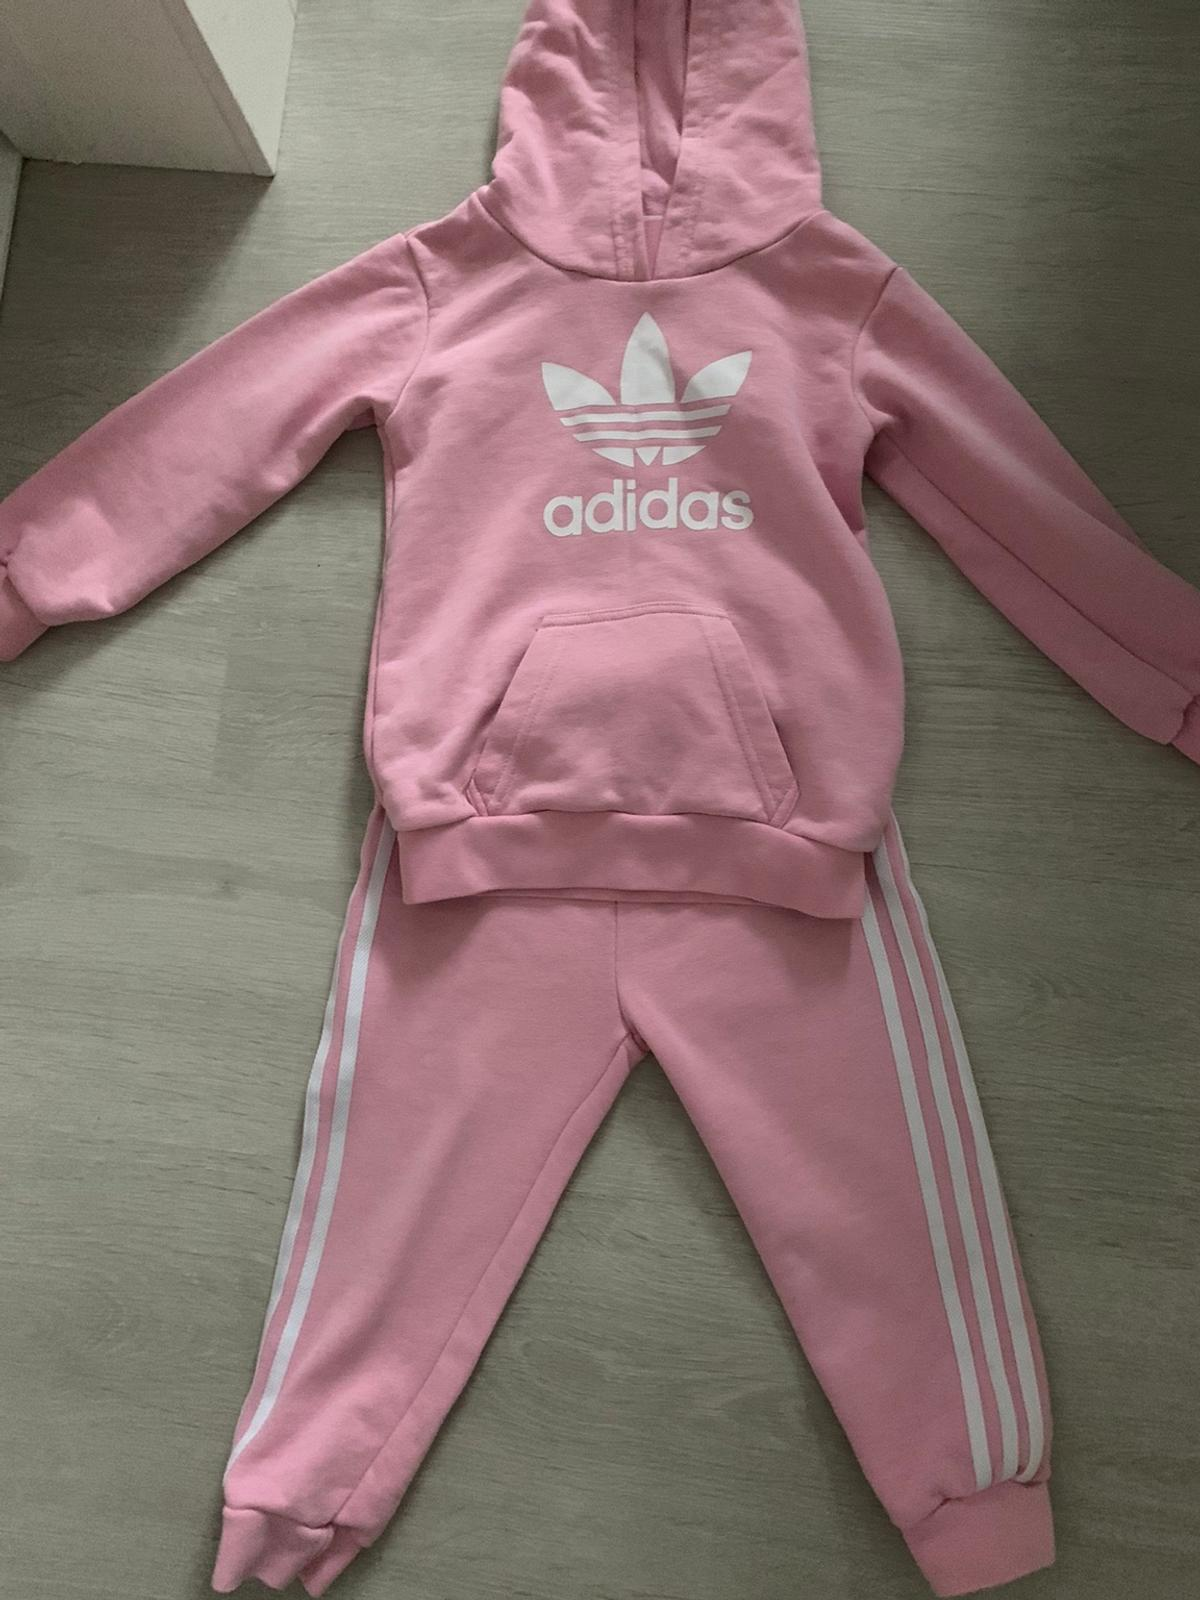 algas marinas Persistencia Económico  Baby girl Adidas tracksuit in L33 Knowsley for £20.00 for sale | Shpock